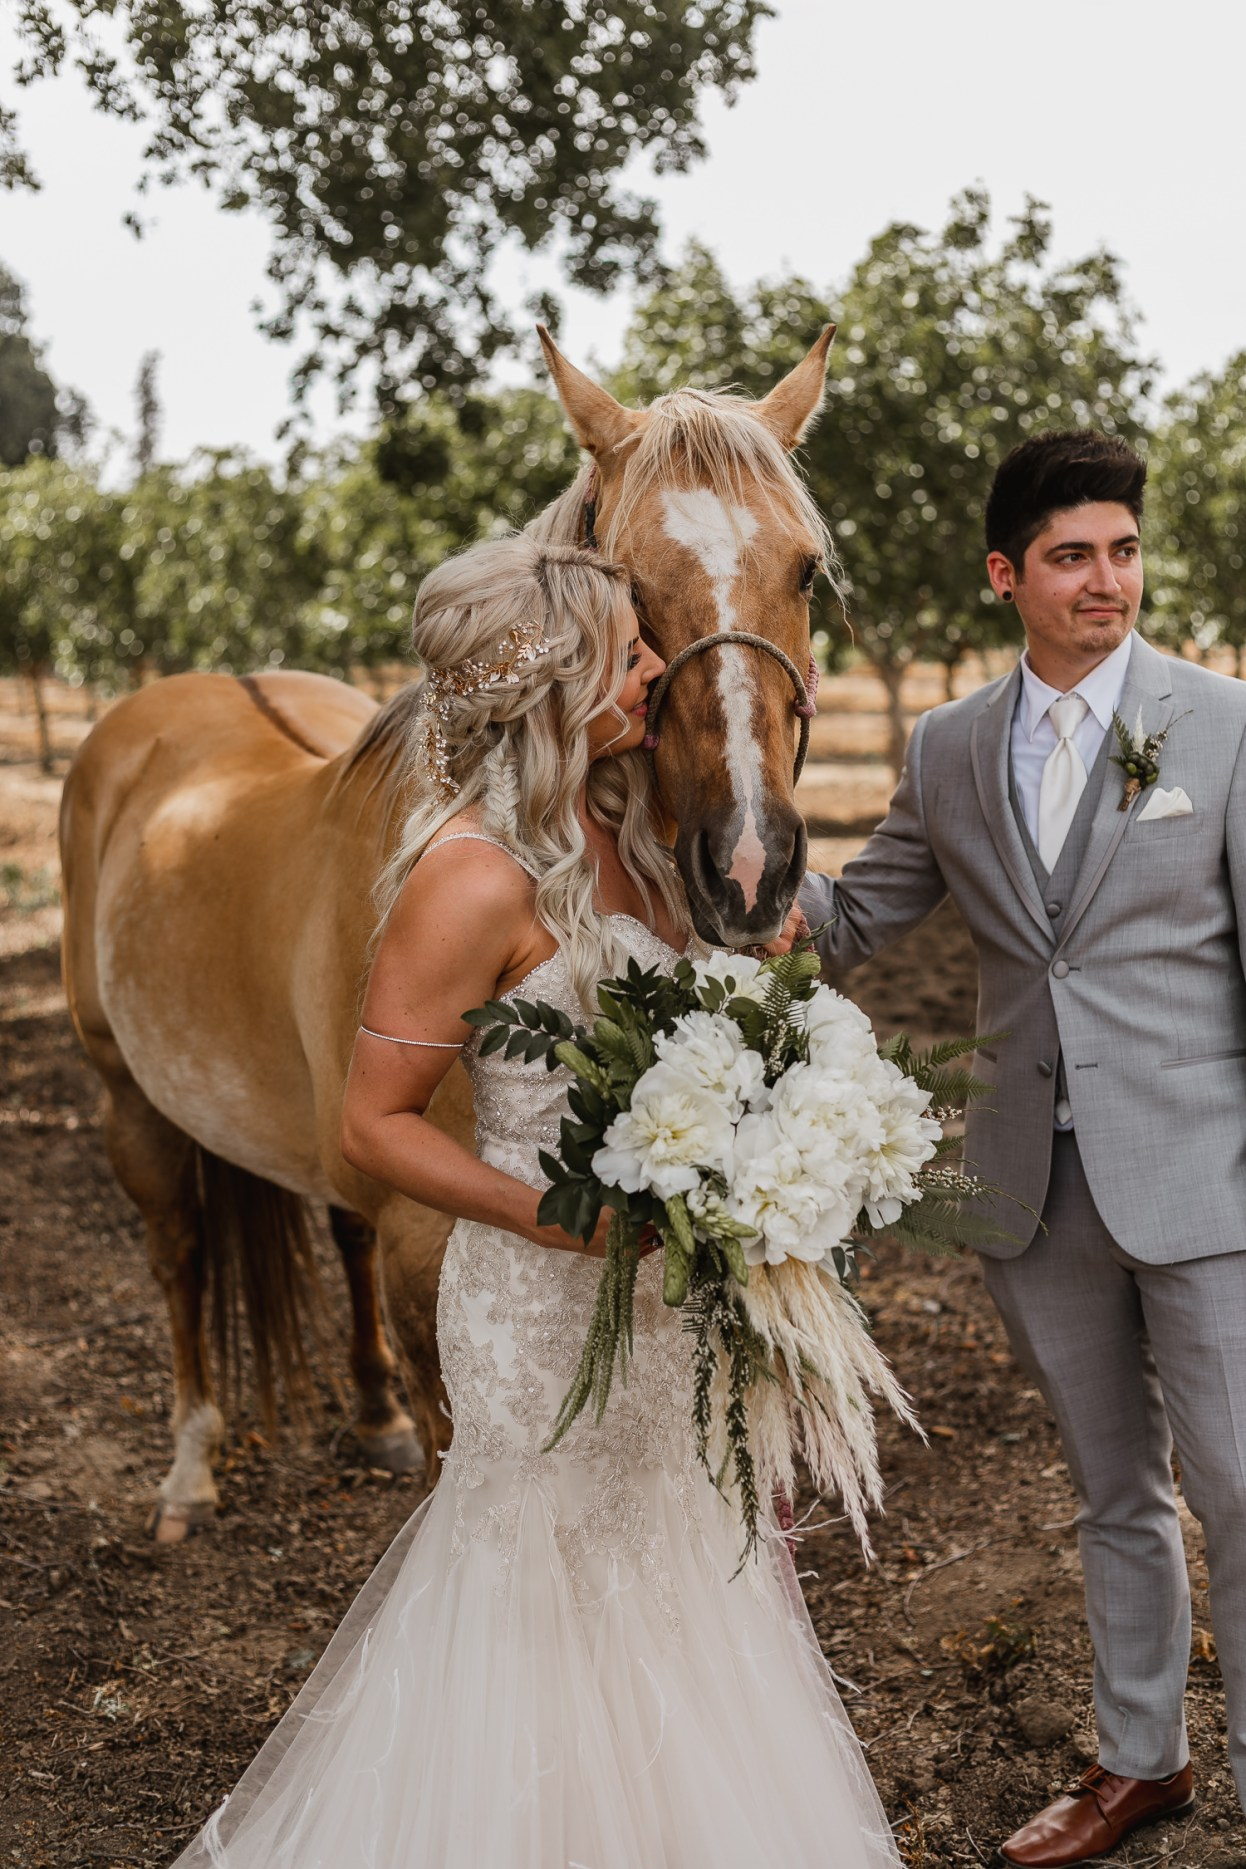 Bride and groom portraits with beautiful horse on ranch.